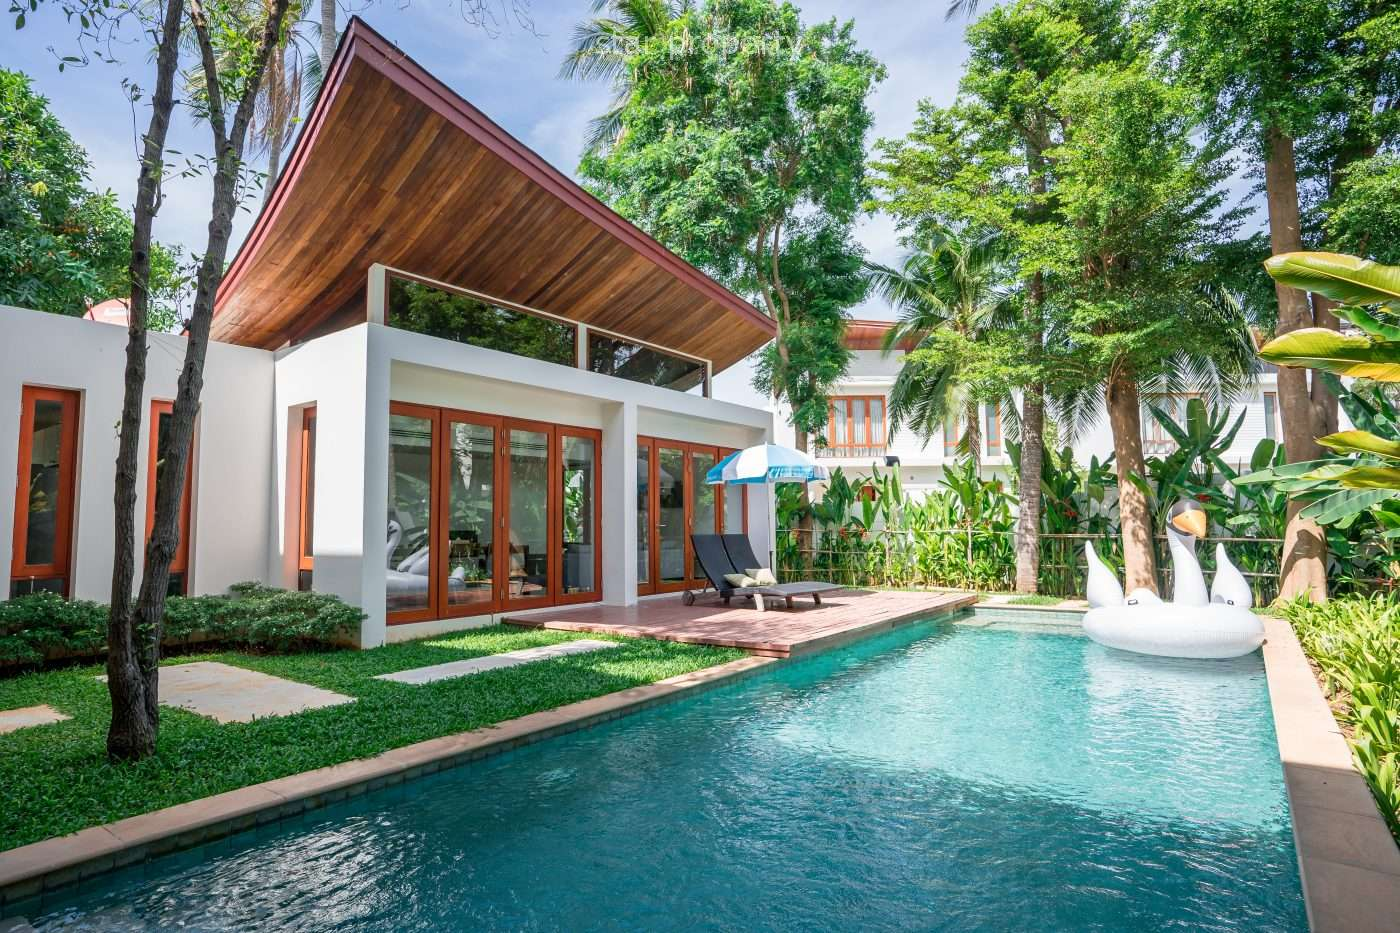 Pool Villa Near The Beach for Sale at Pran-A-Luxe